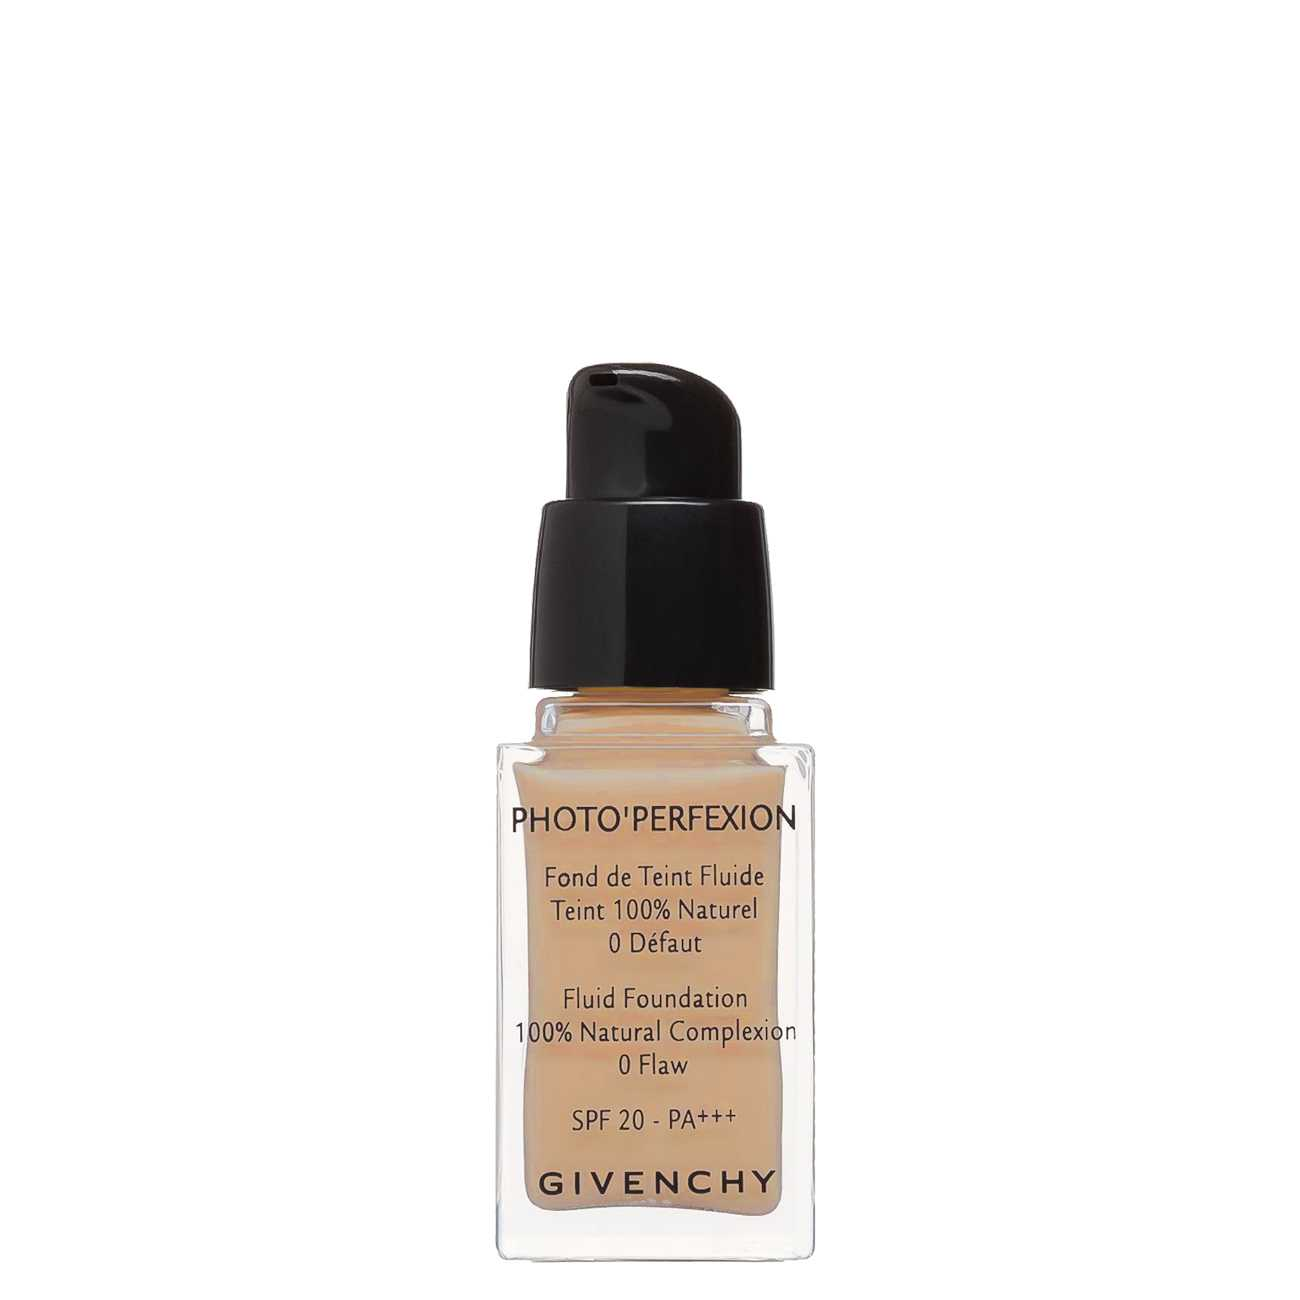 PHOTO PERFEXION 25 ML Perfect Gold 7